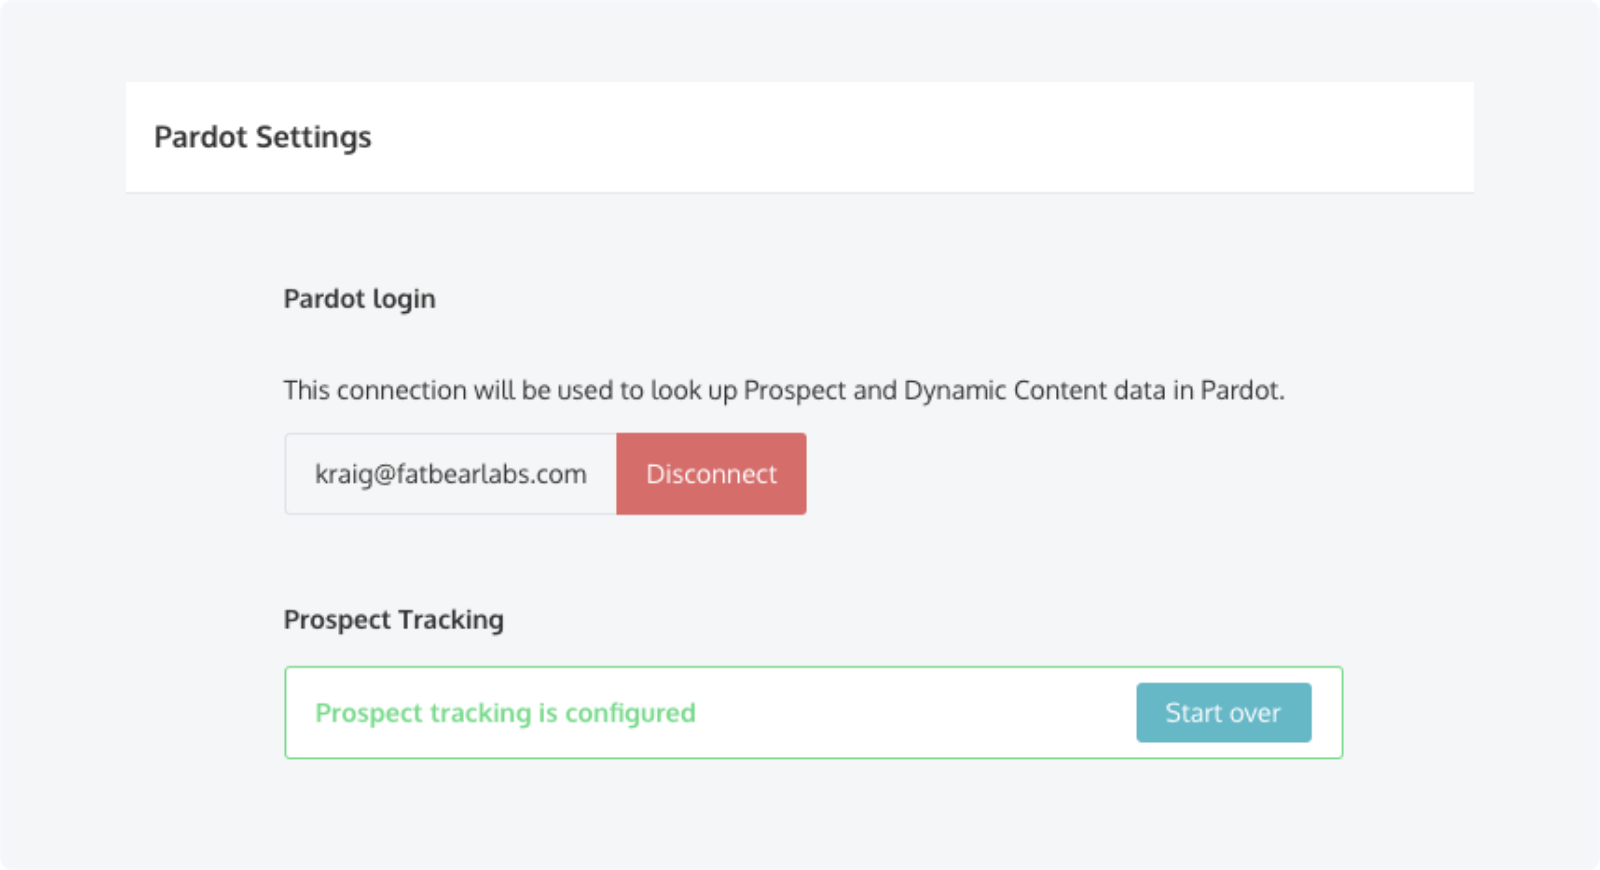 Success! Qualified for Pardot prospect tracking configured